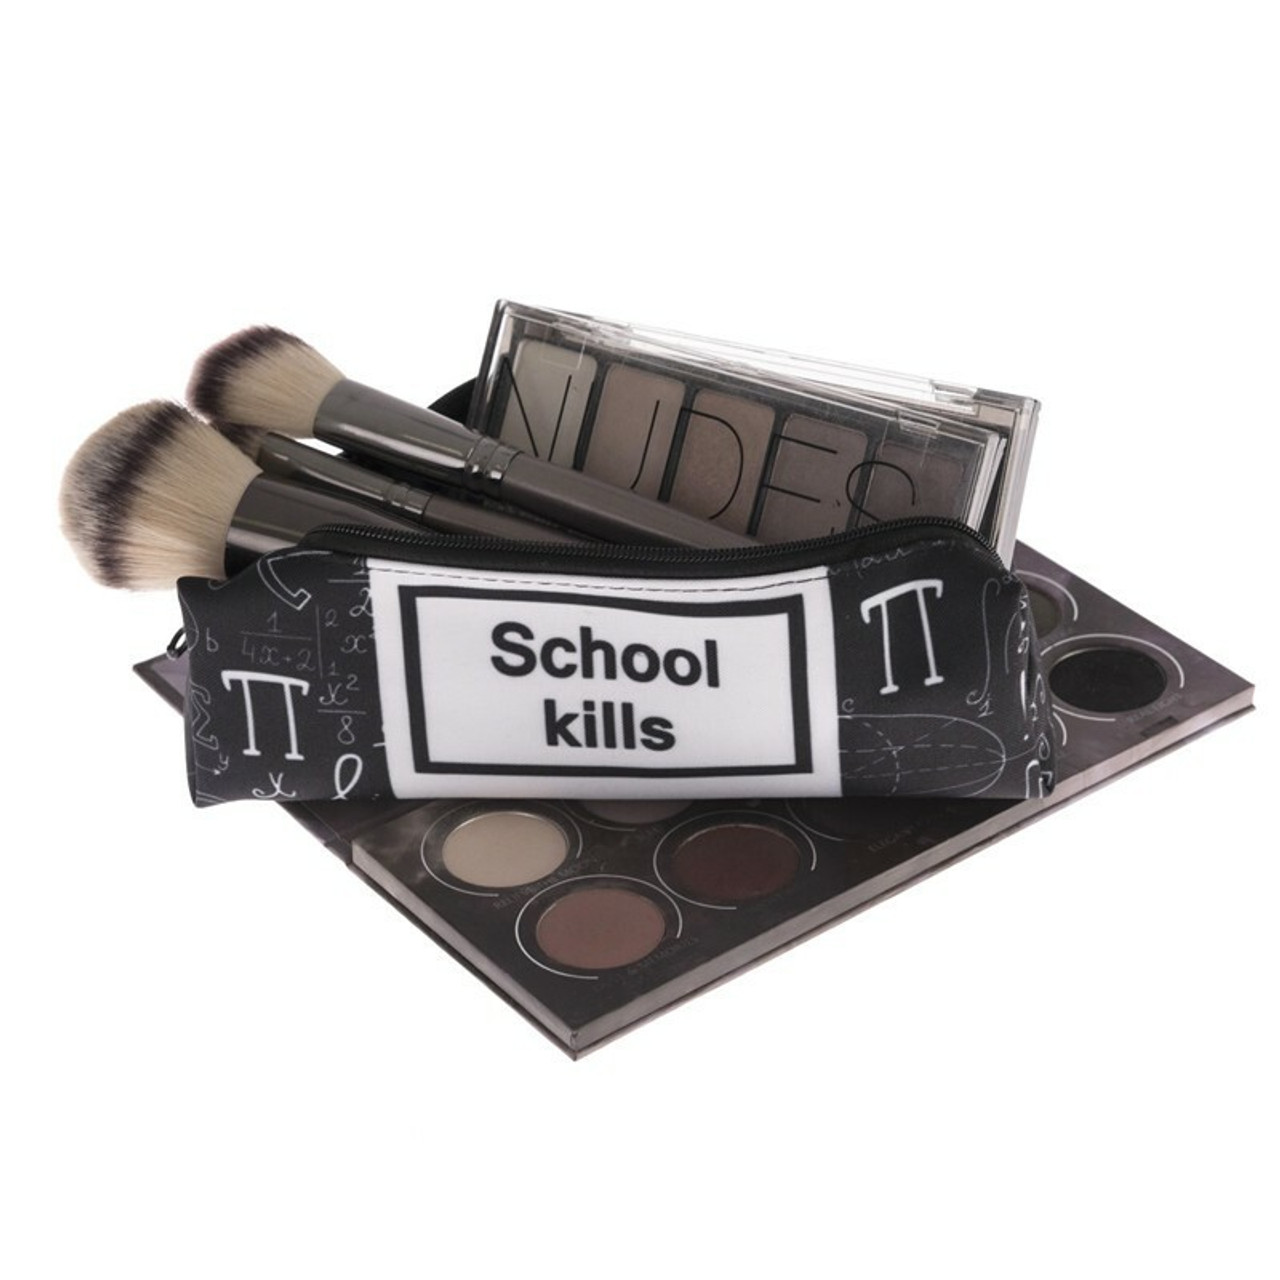 School Kills Sassy Text Rectangular Graphic Print Cosmetics Case - 18 Styles on top of an eyeshadow palette with cosmetics brushes and a makeup palette sticking out